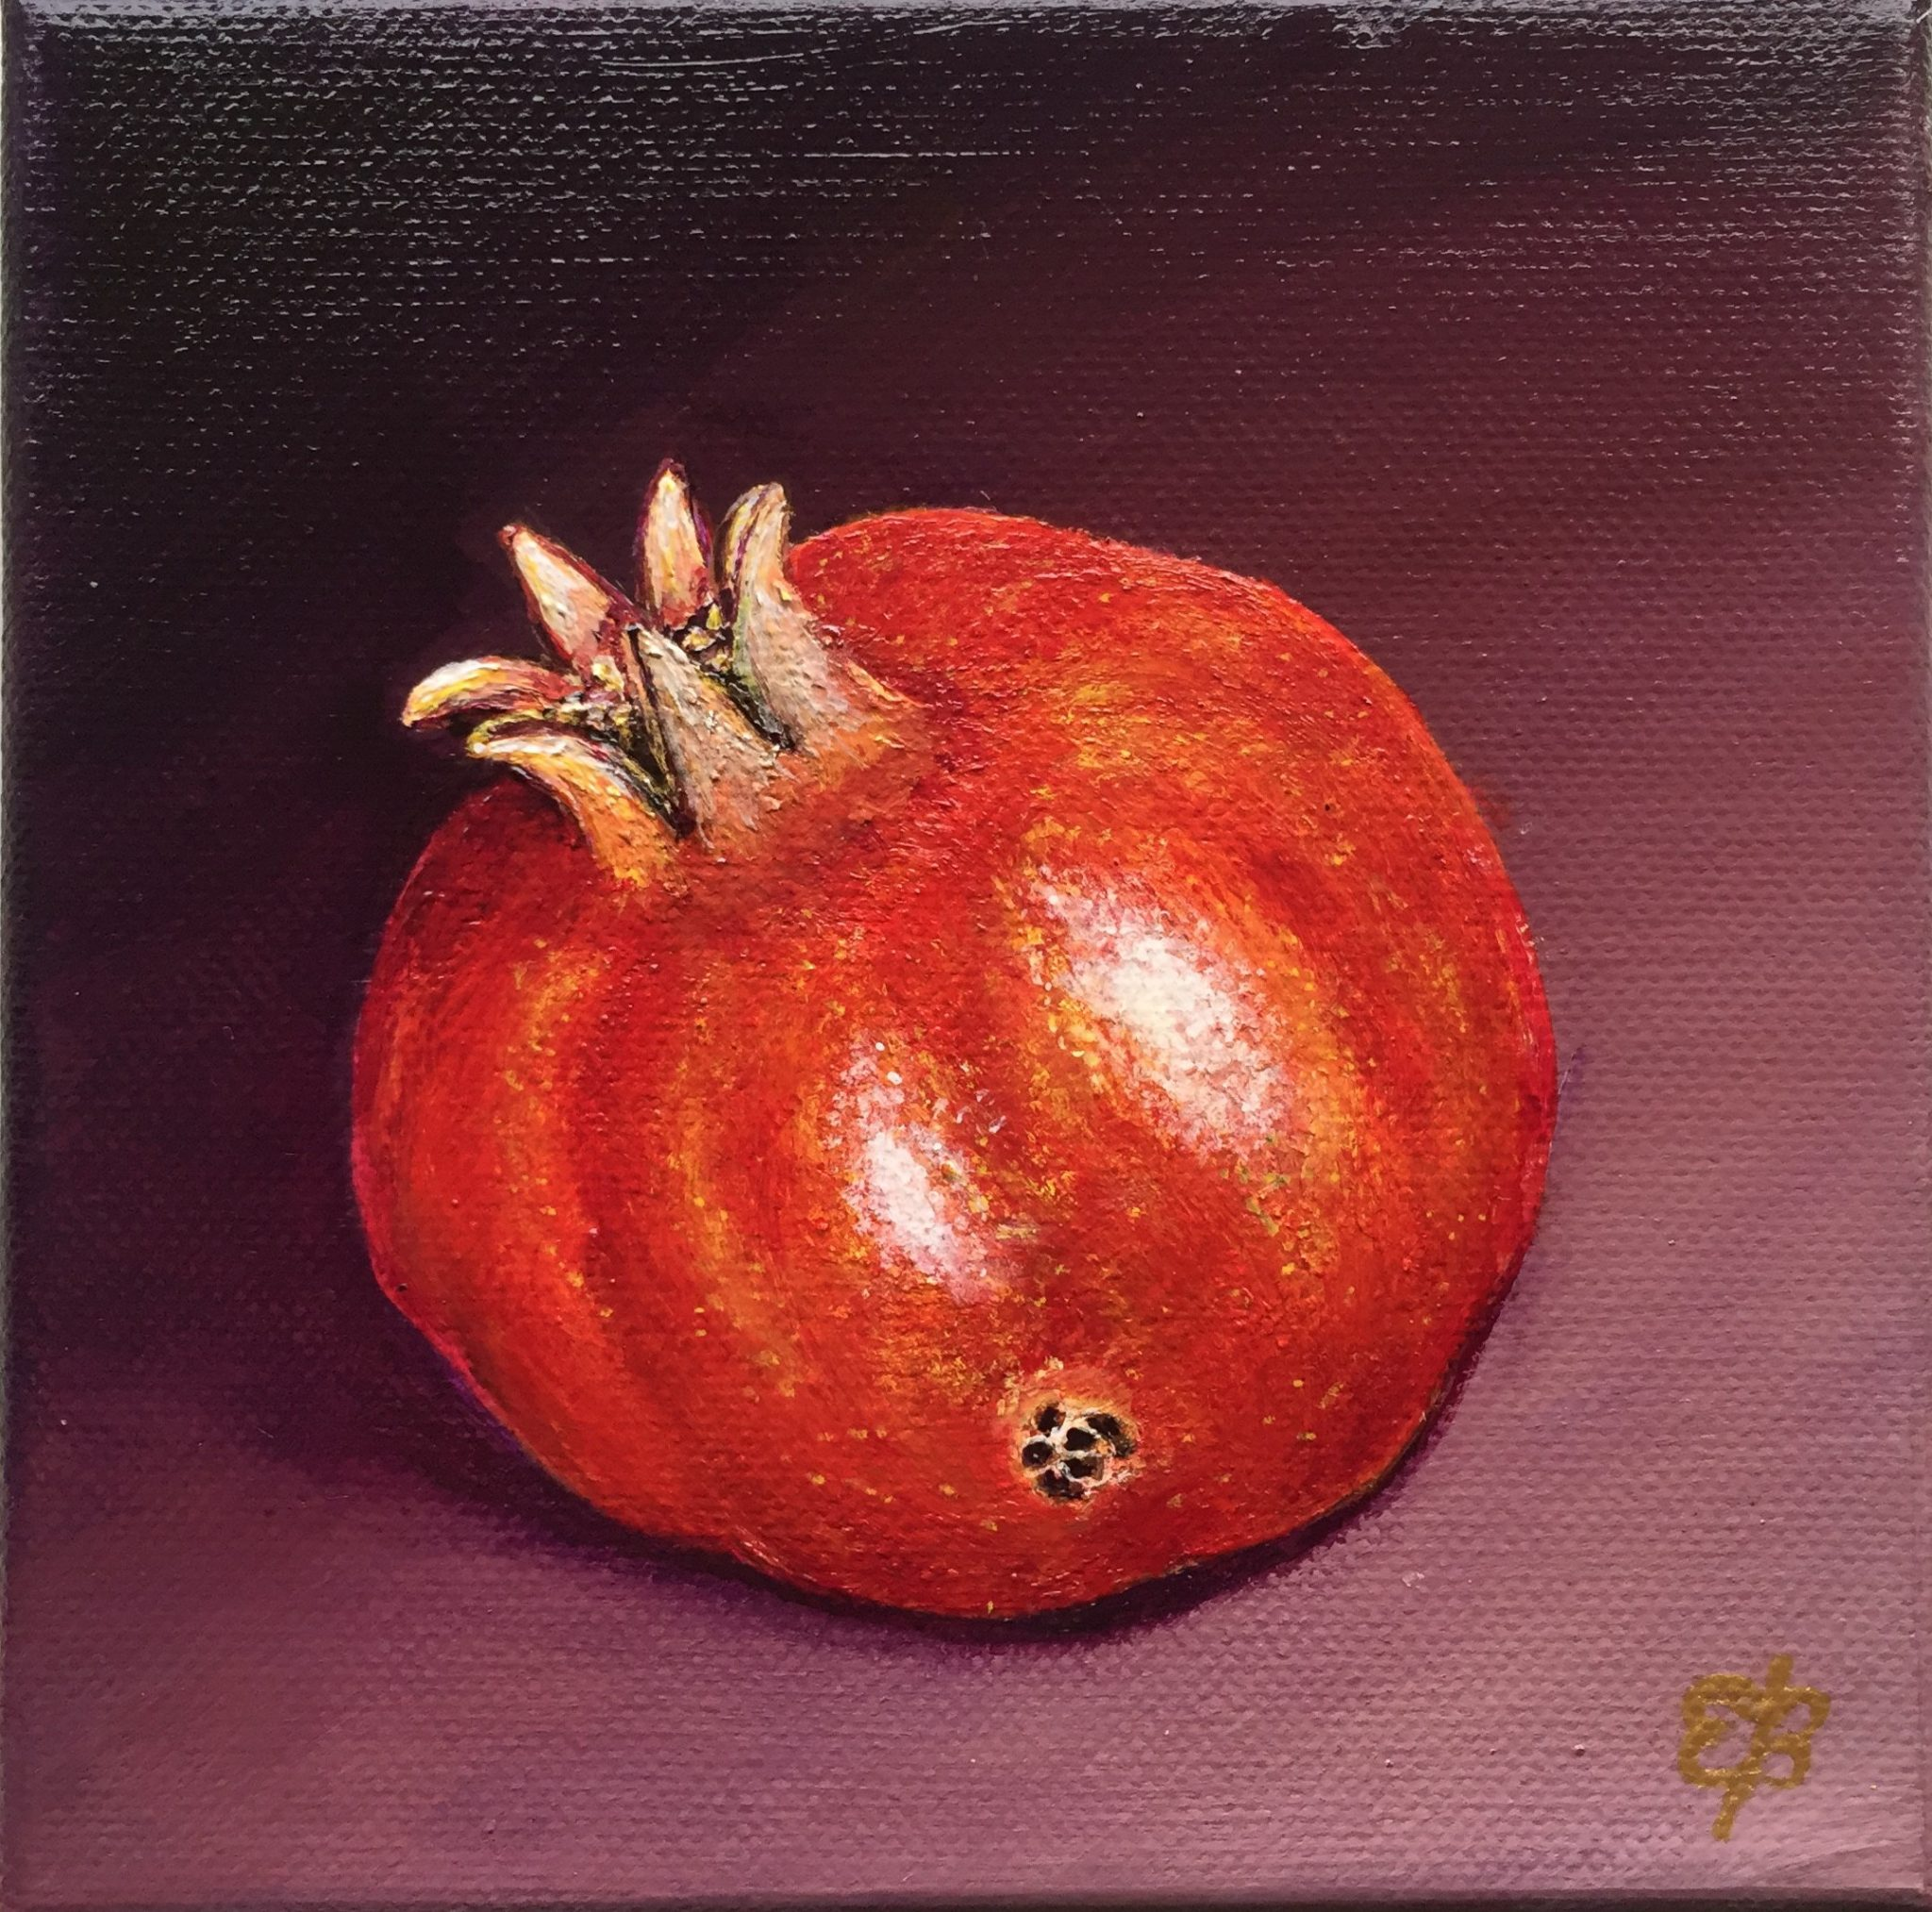 Pomegranate Granatæble